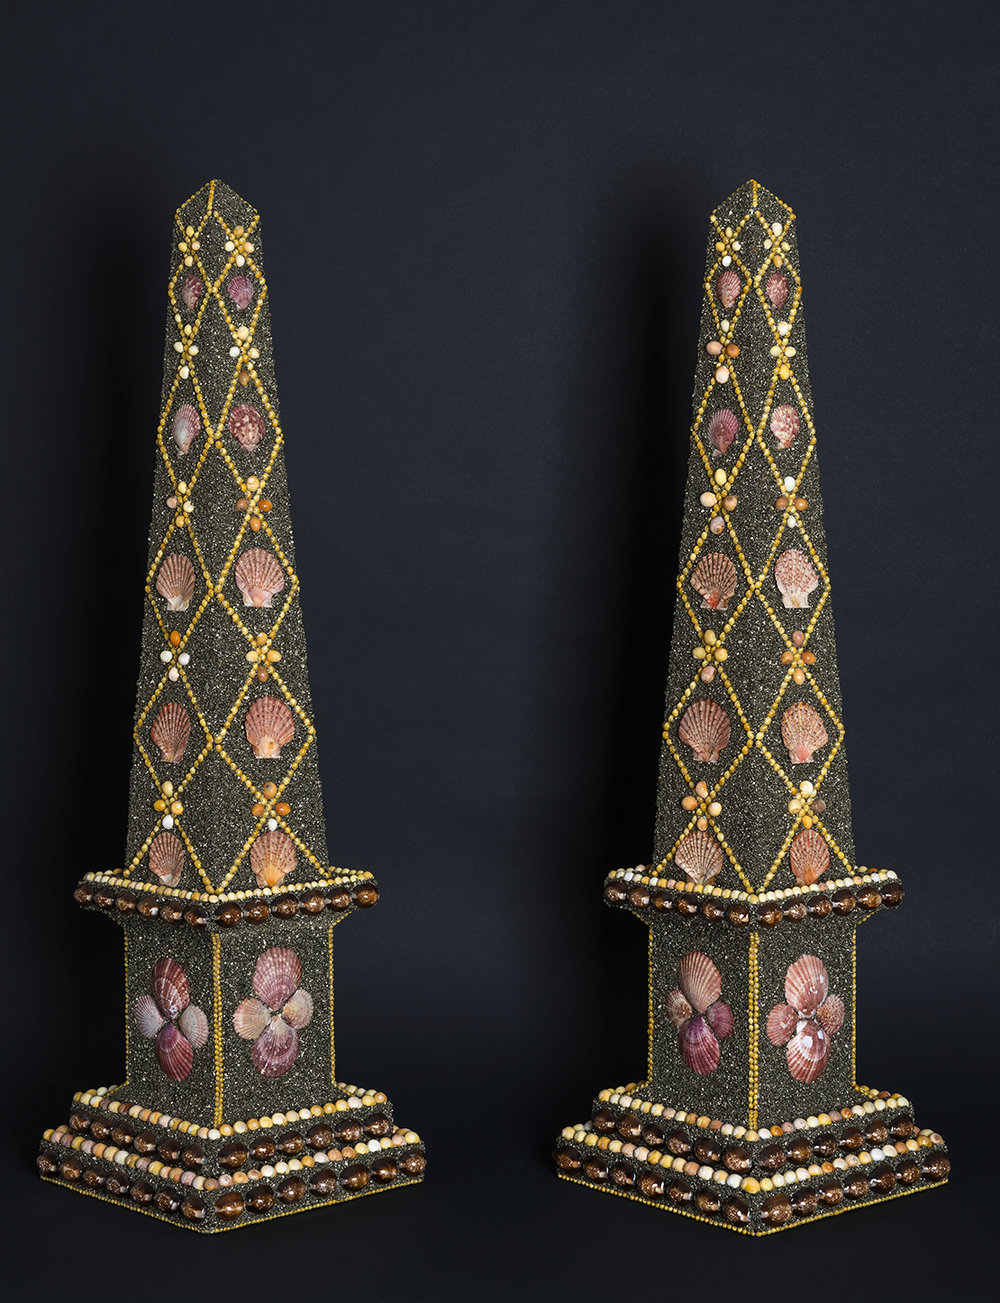 A glittering  pair of obelisks with lattice panel designs. Yellow seed shells, scallops and snakehead cowries arranged on a background of crushed mineral. 82 x 23 x 23 cm